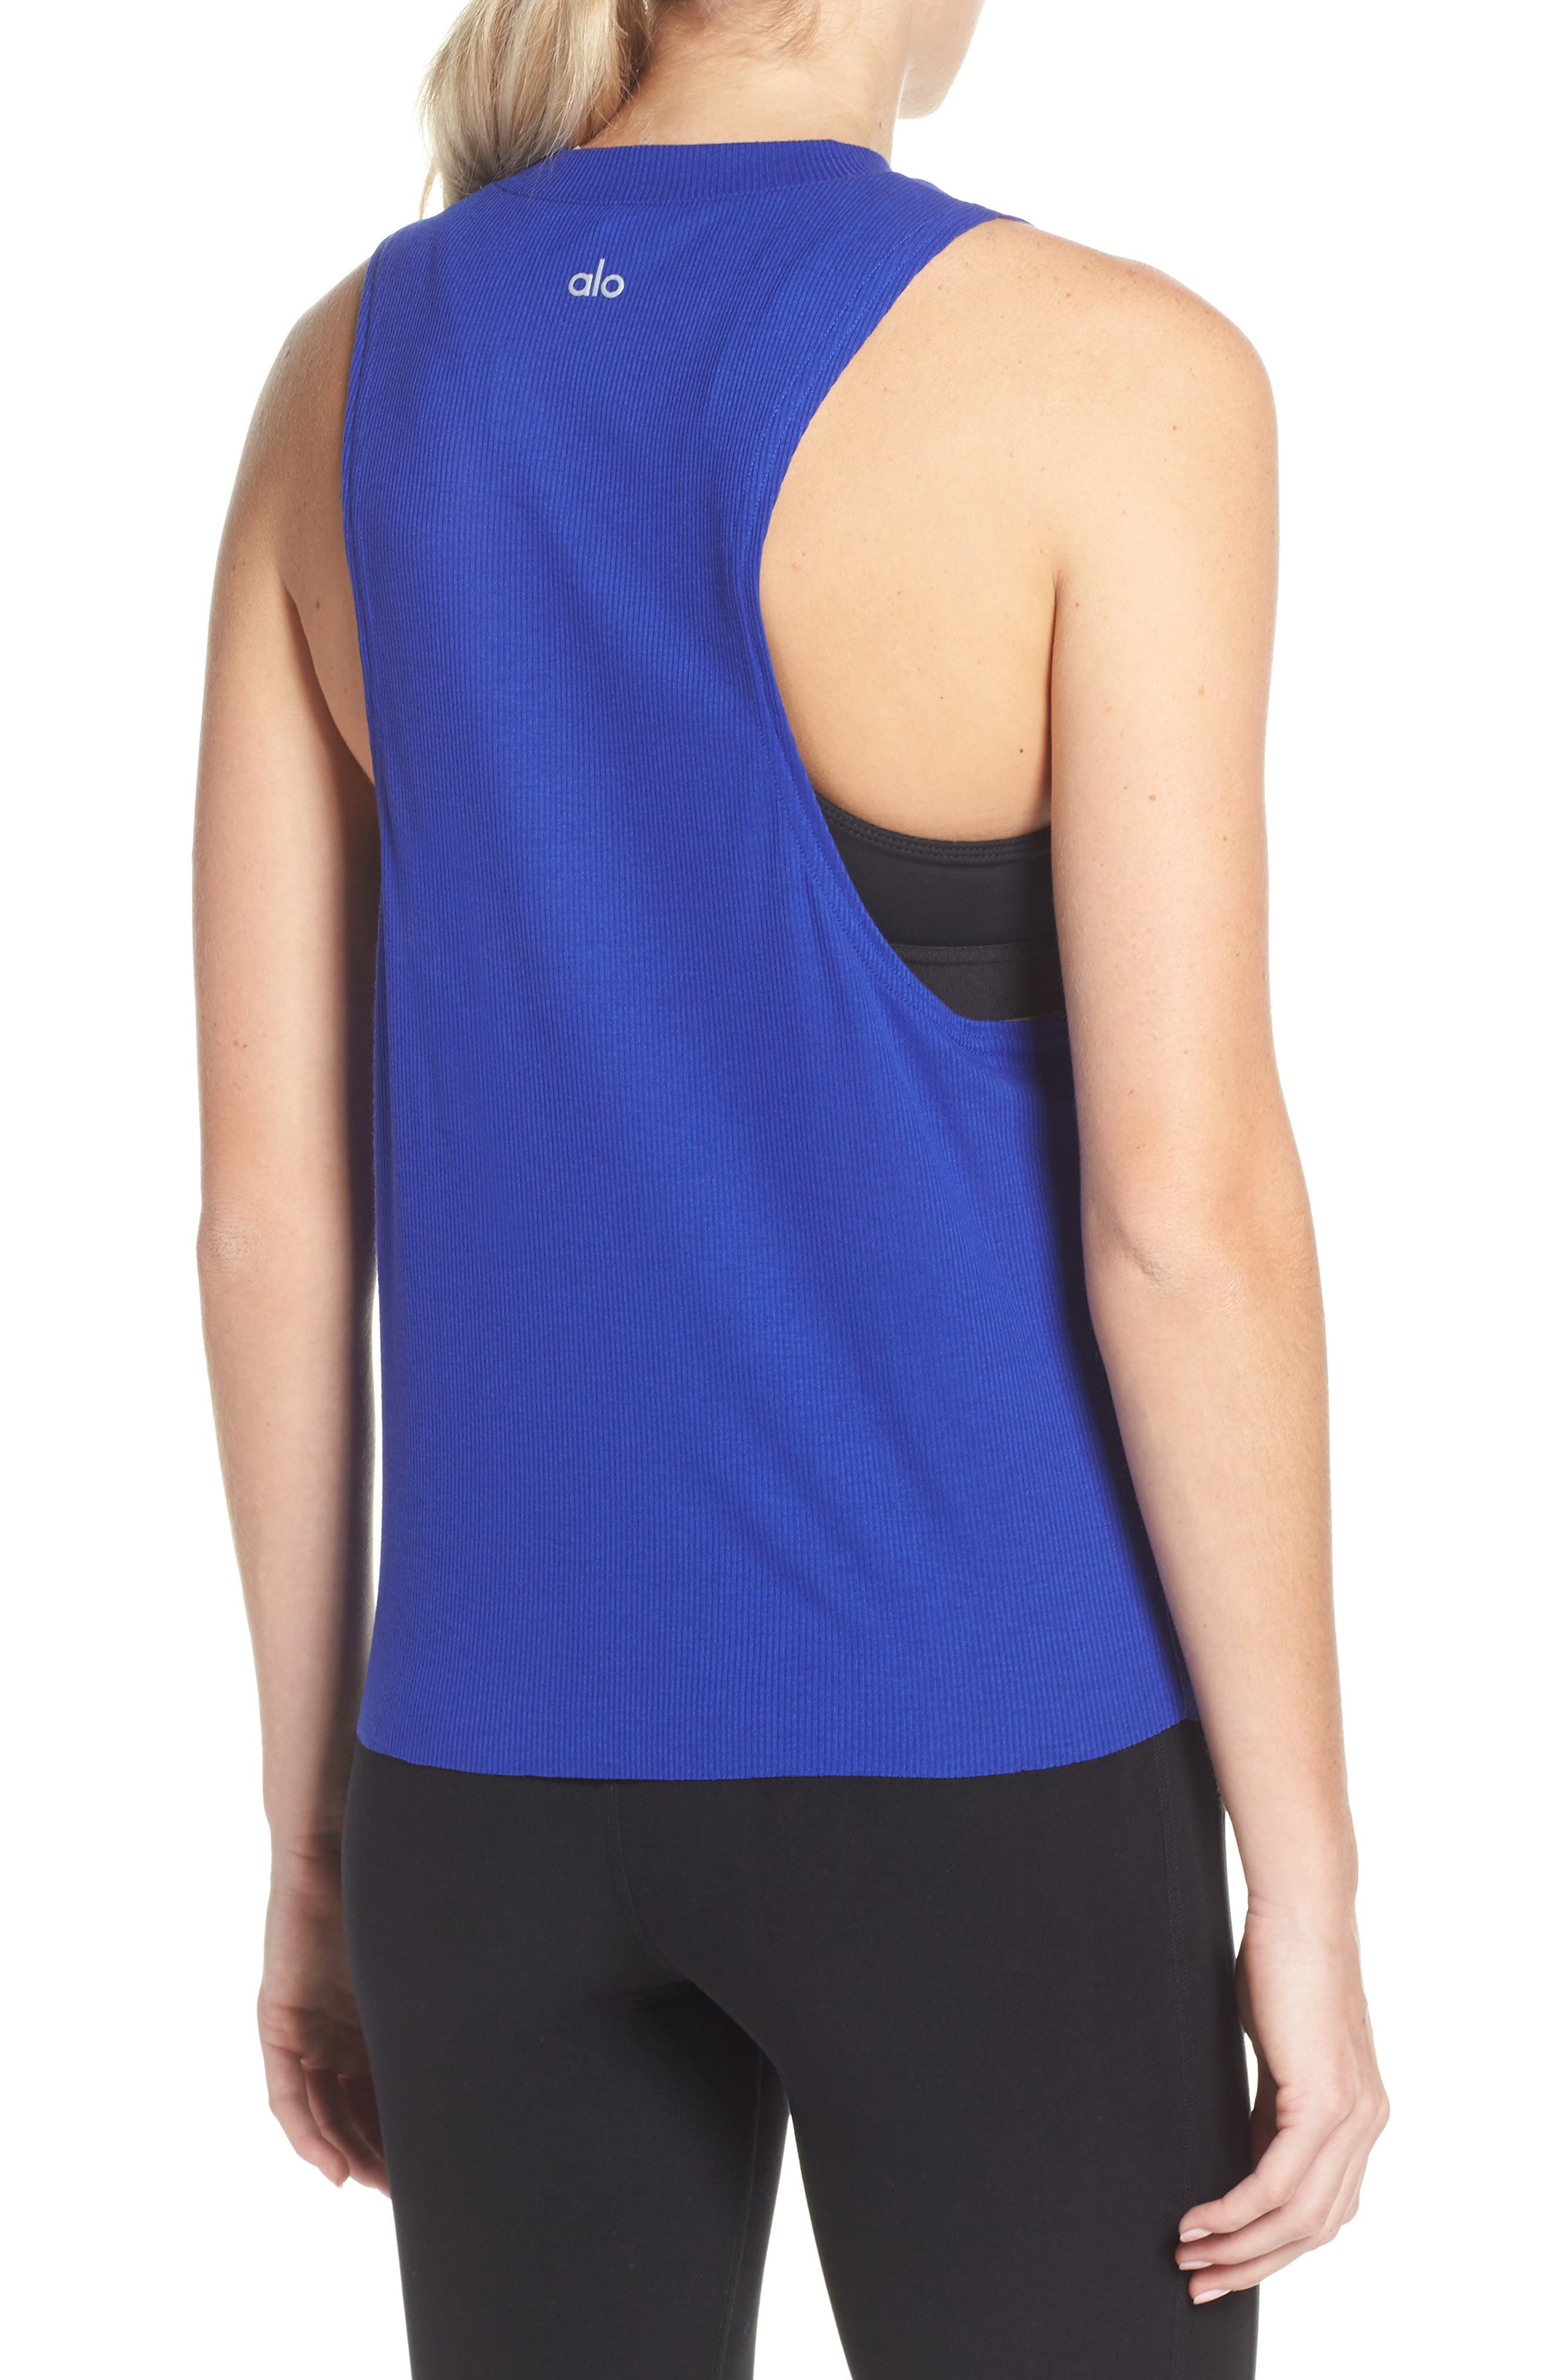 a24bef17aaff7 Women s Active   Workout Tanks